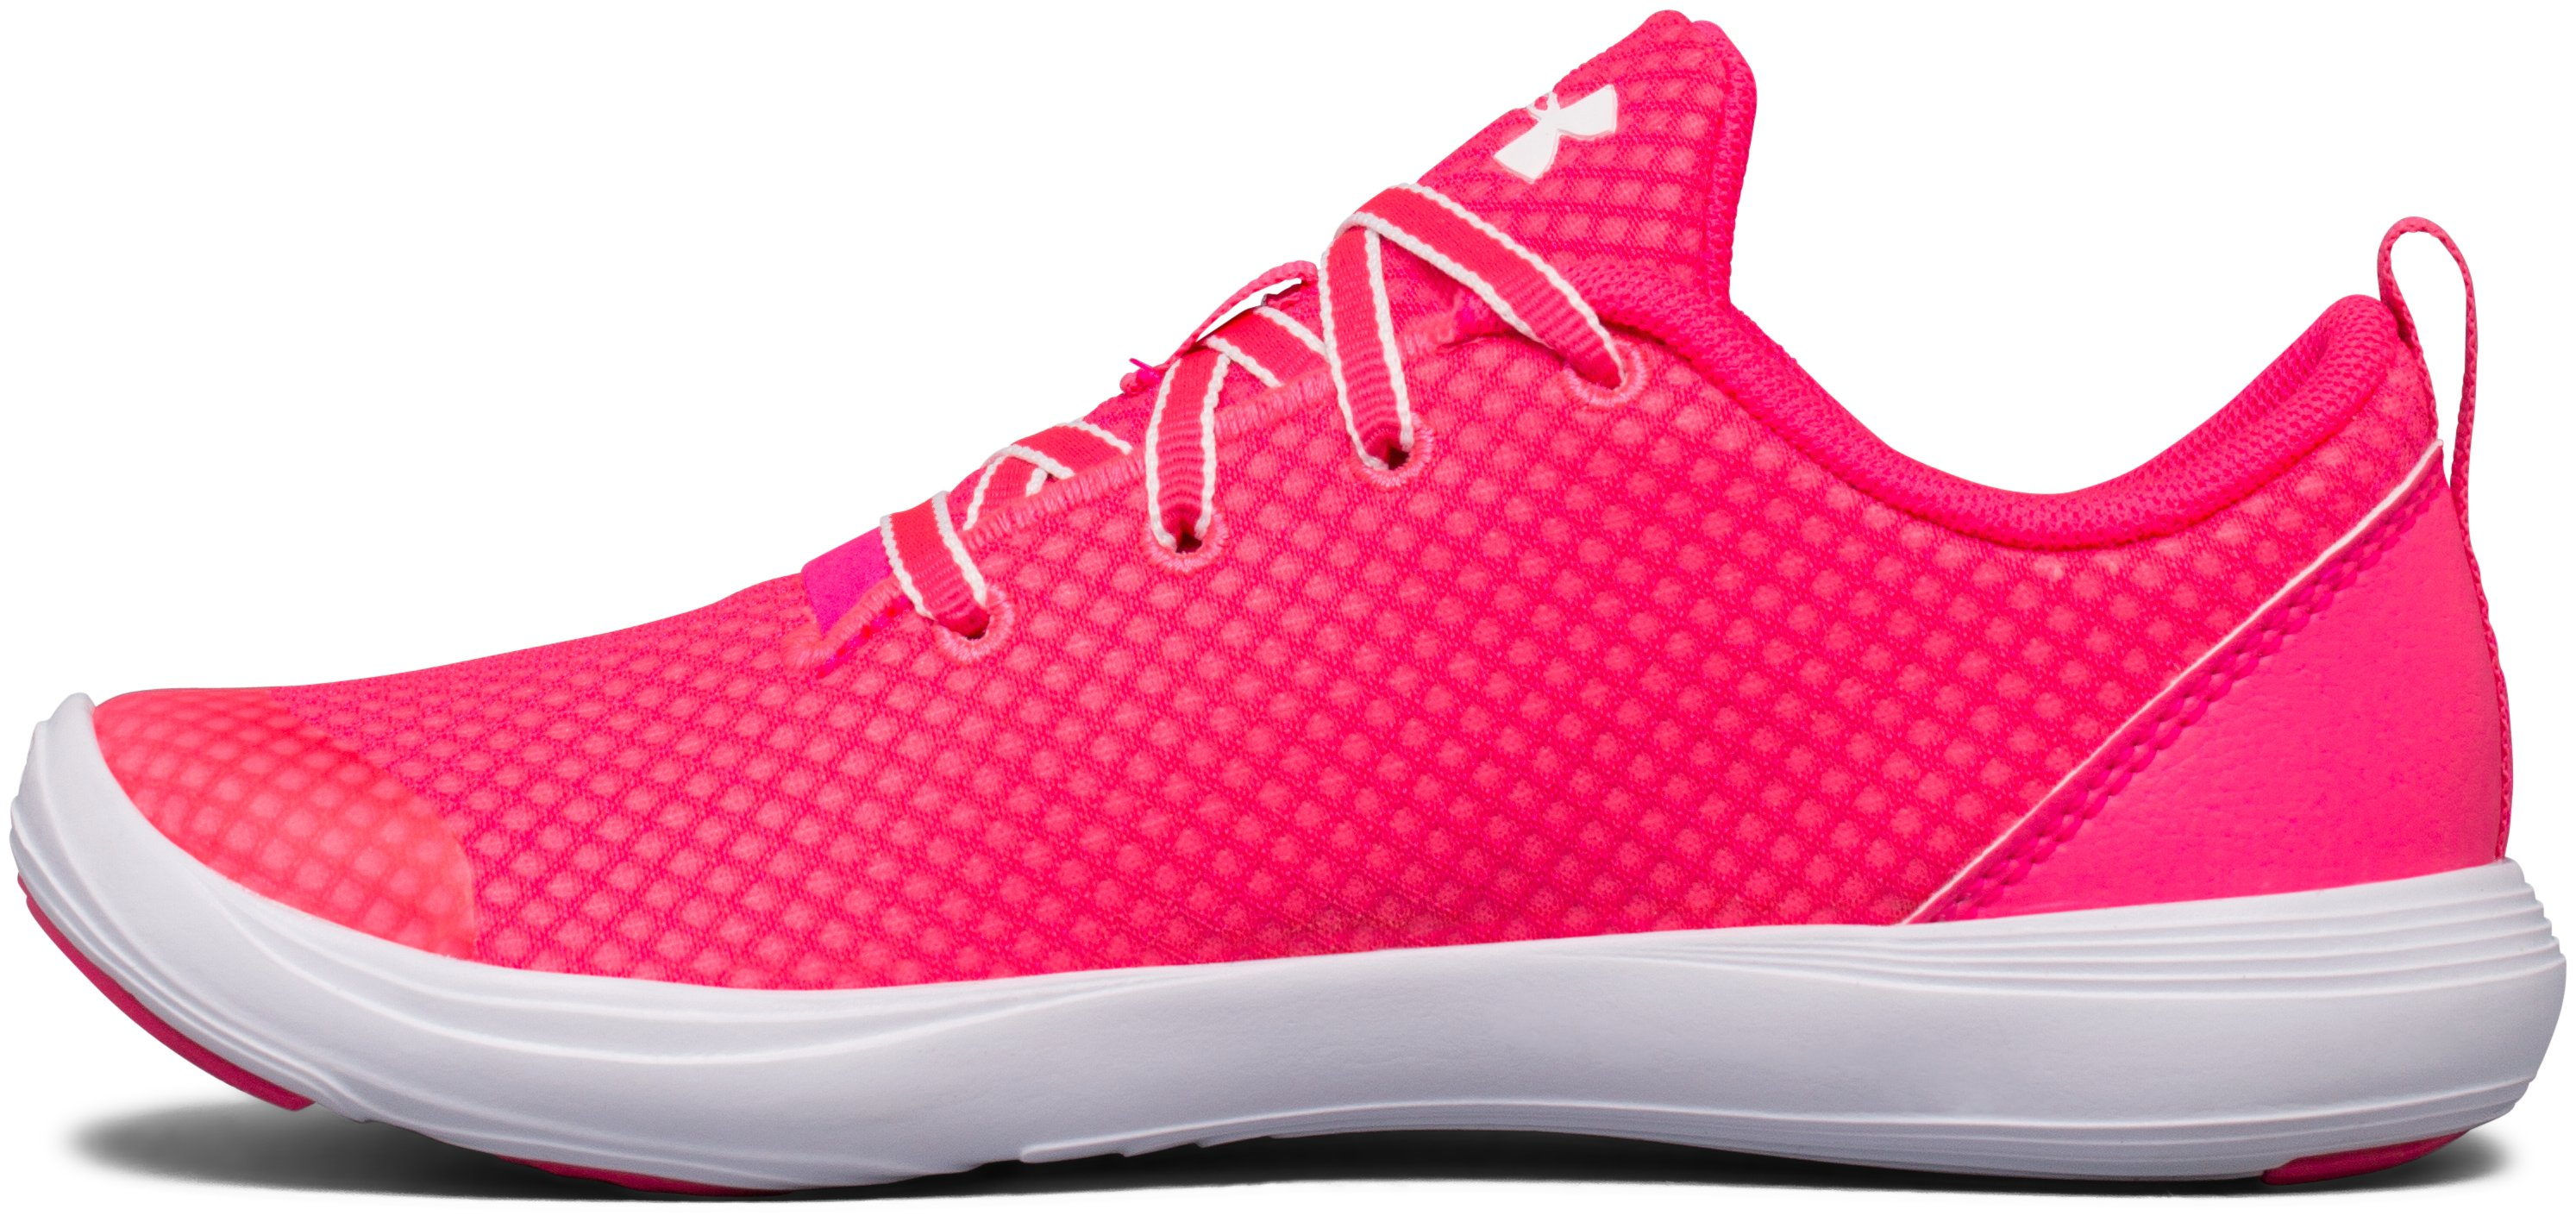 Girls' Pre-School UA Street Precision Sport LTW Training Shoes, PENTA PINK, undefined